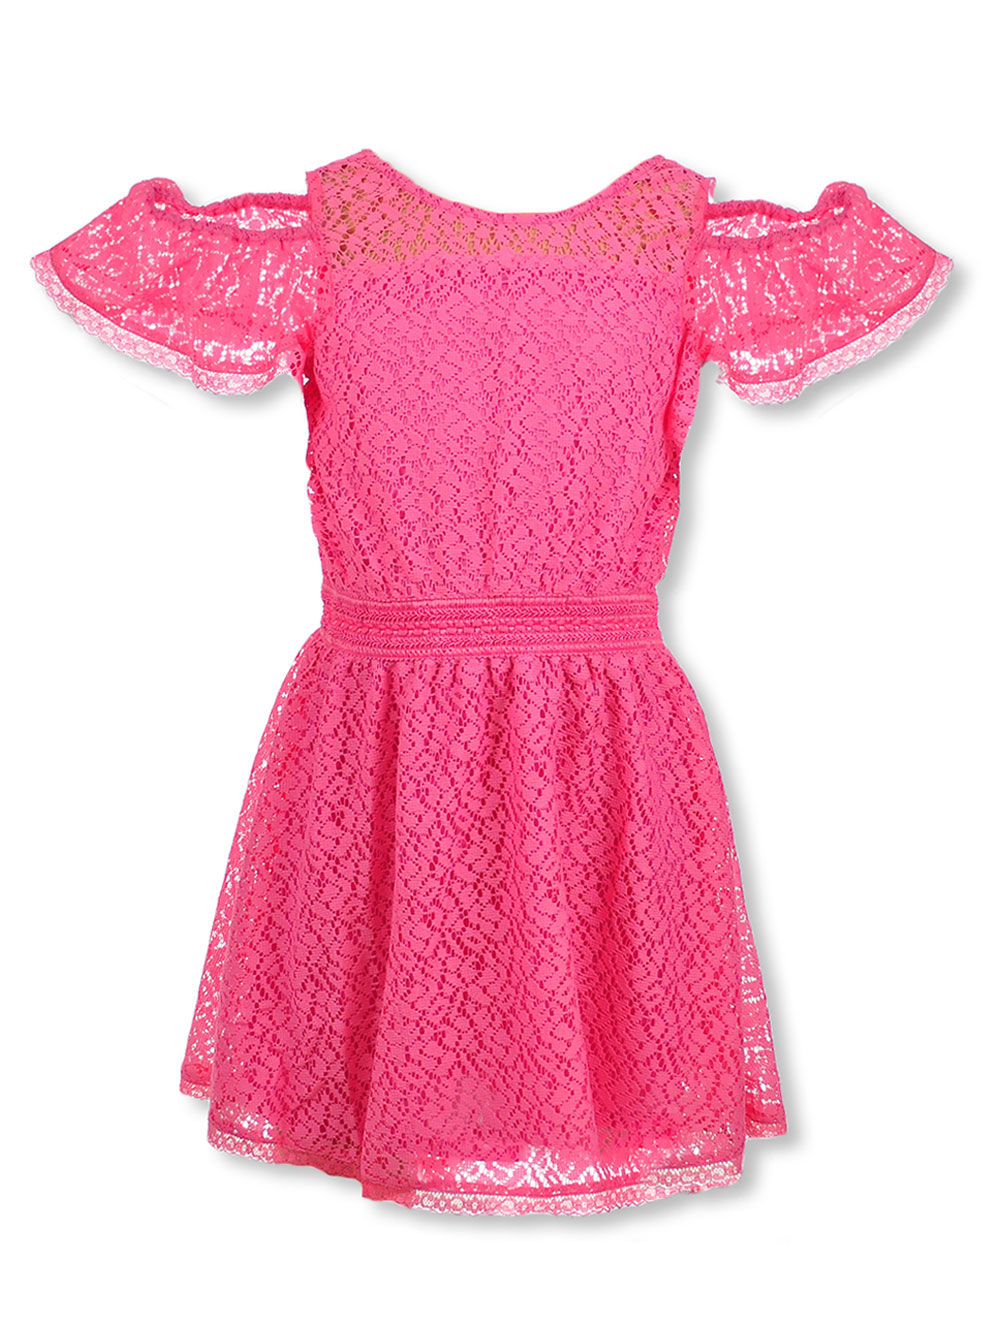 Size 7-8 Casual Dresses for Girls